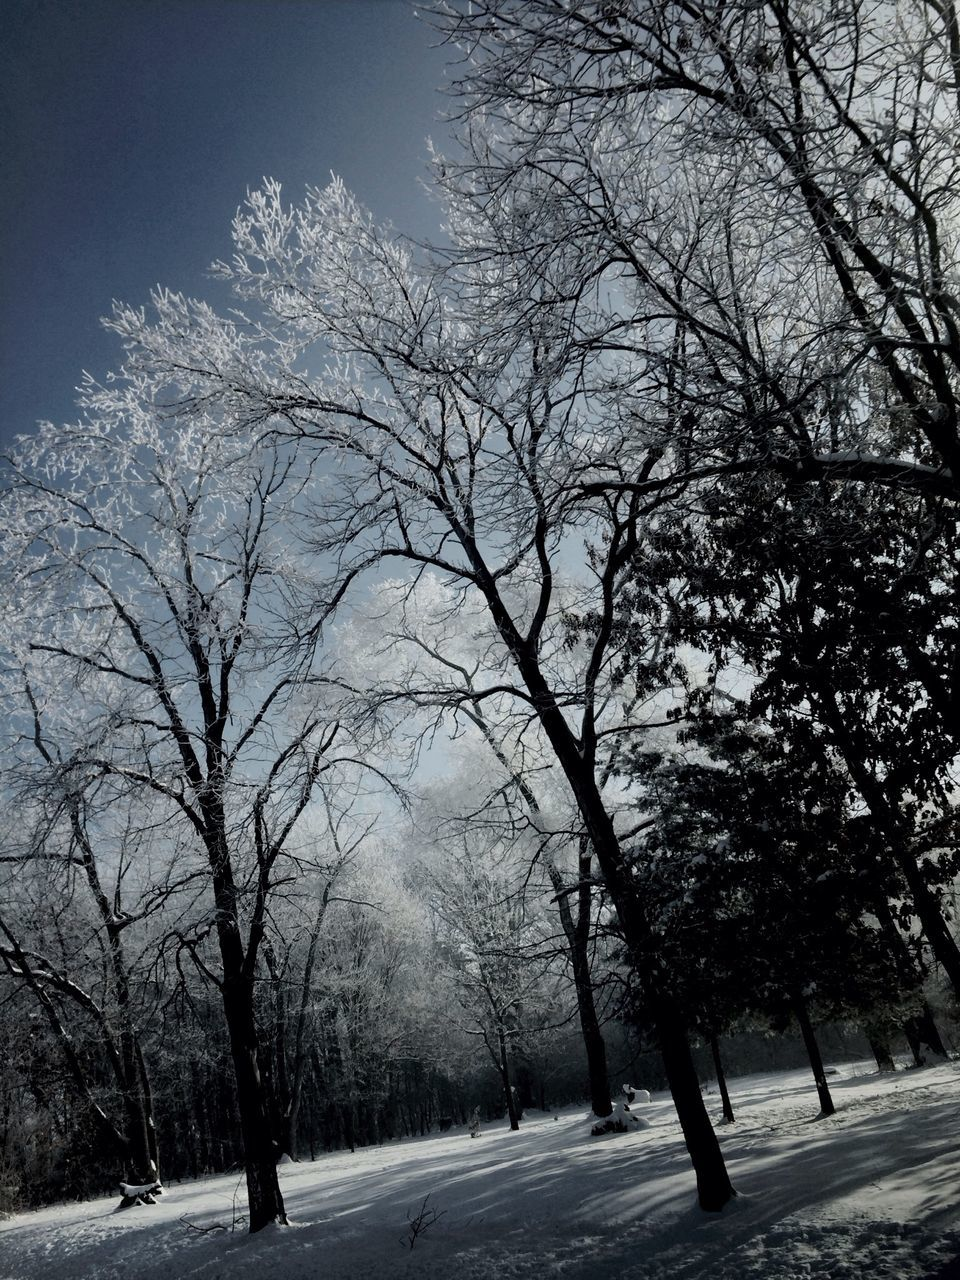 tree, bare tree, road, nature, no people, winter, outdoors, tranquility, snow, branch, day, scenics, cold temperature, clear sky, beauty in nature, sky, city